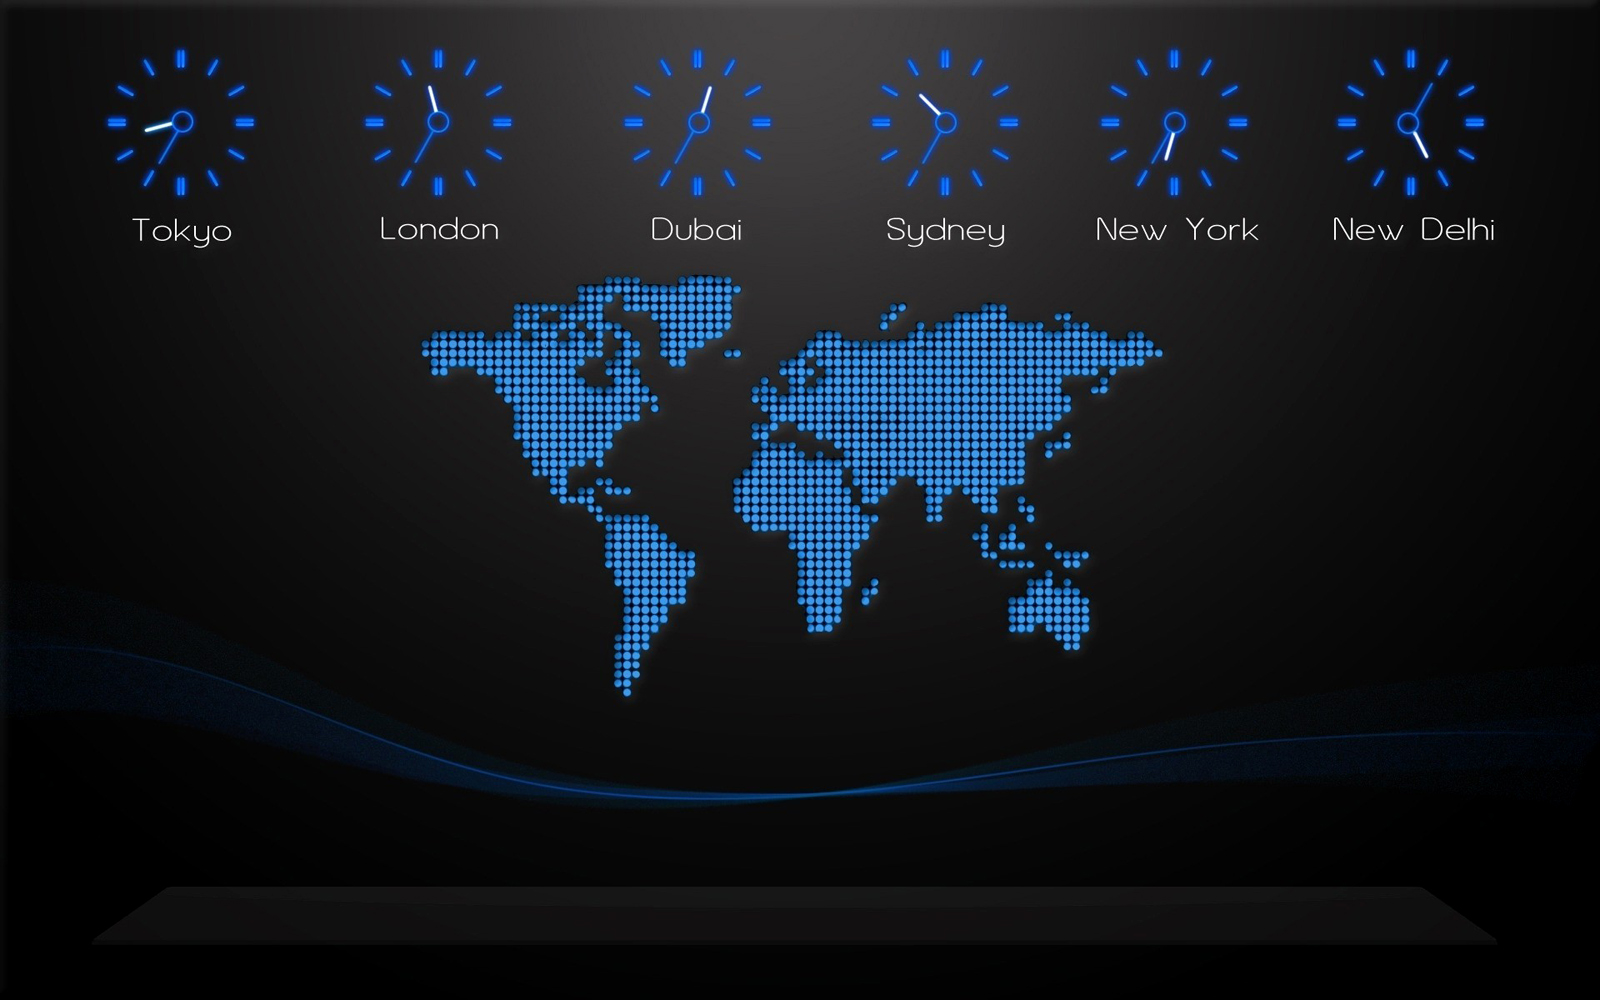 44+] World Map Time Zones Wallpaper on WallpaperSafari on